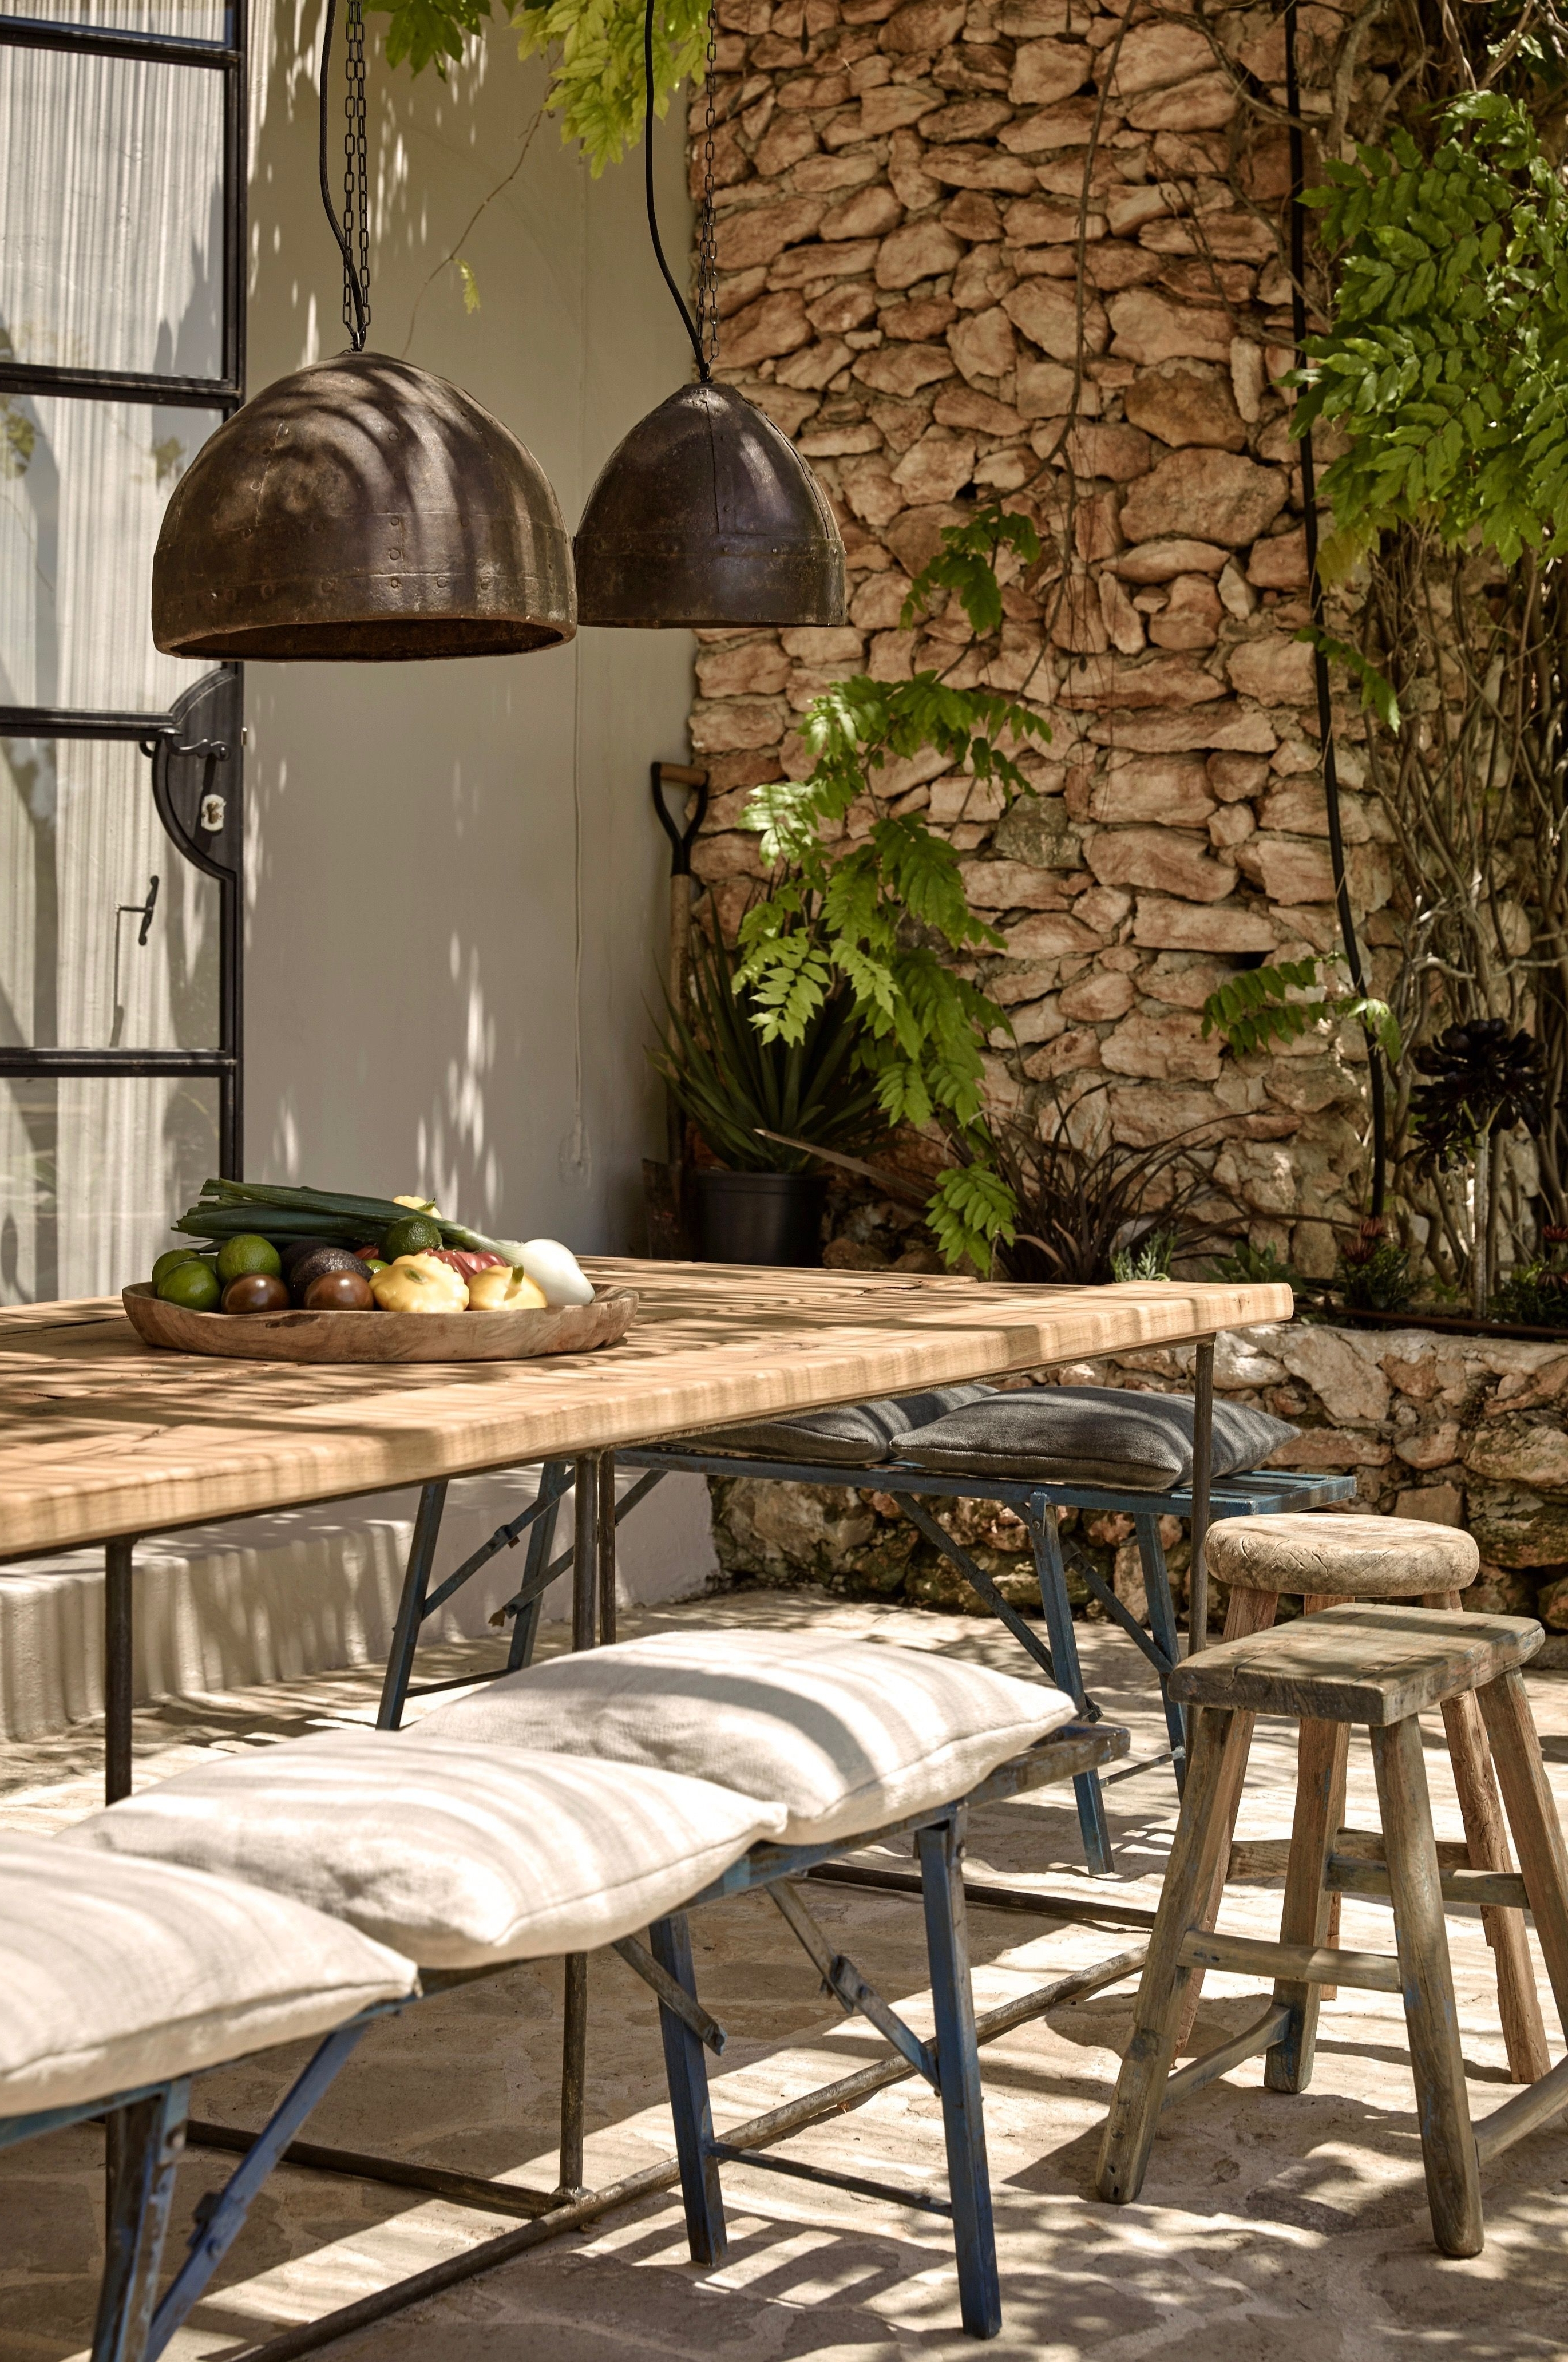 Hotel La Granja Ibiza Outdoor Dining Lanterns Stone Wall Gardenista In Most Up To Date Outdoor Dining Lanterns (View 6 of 20)